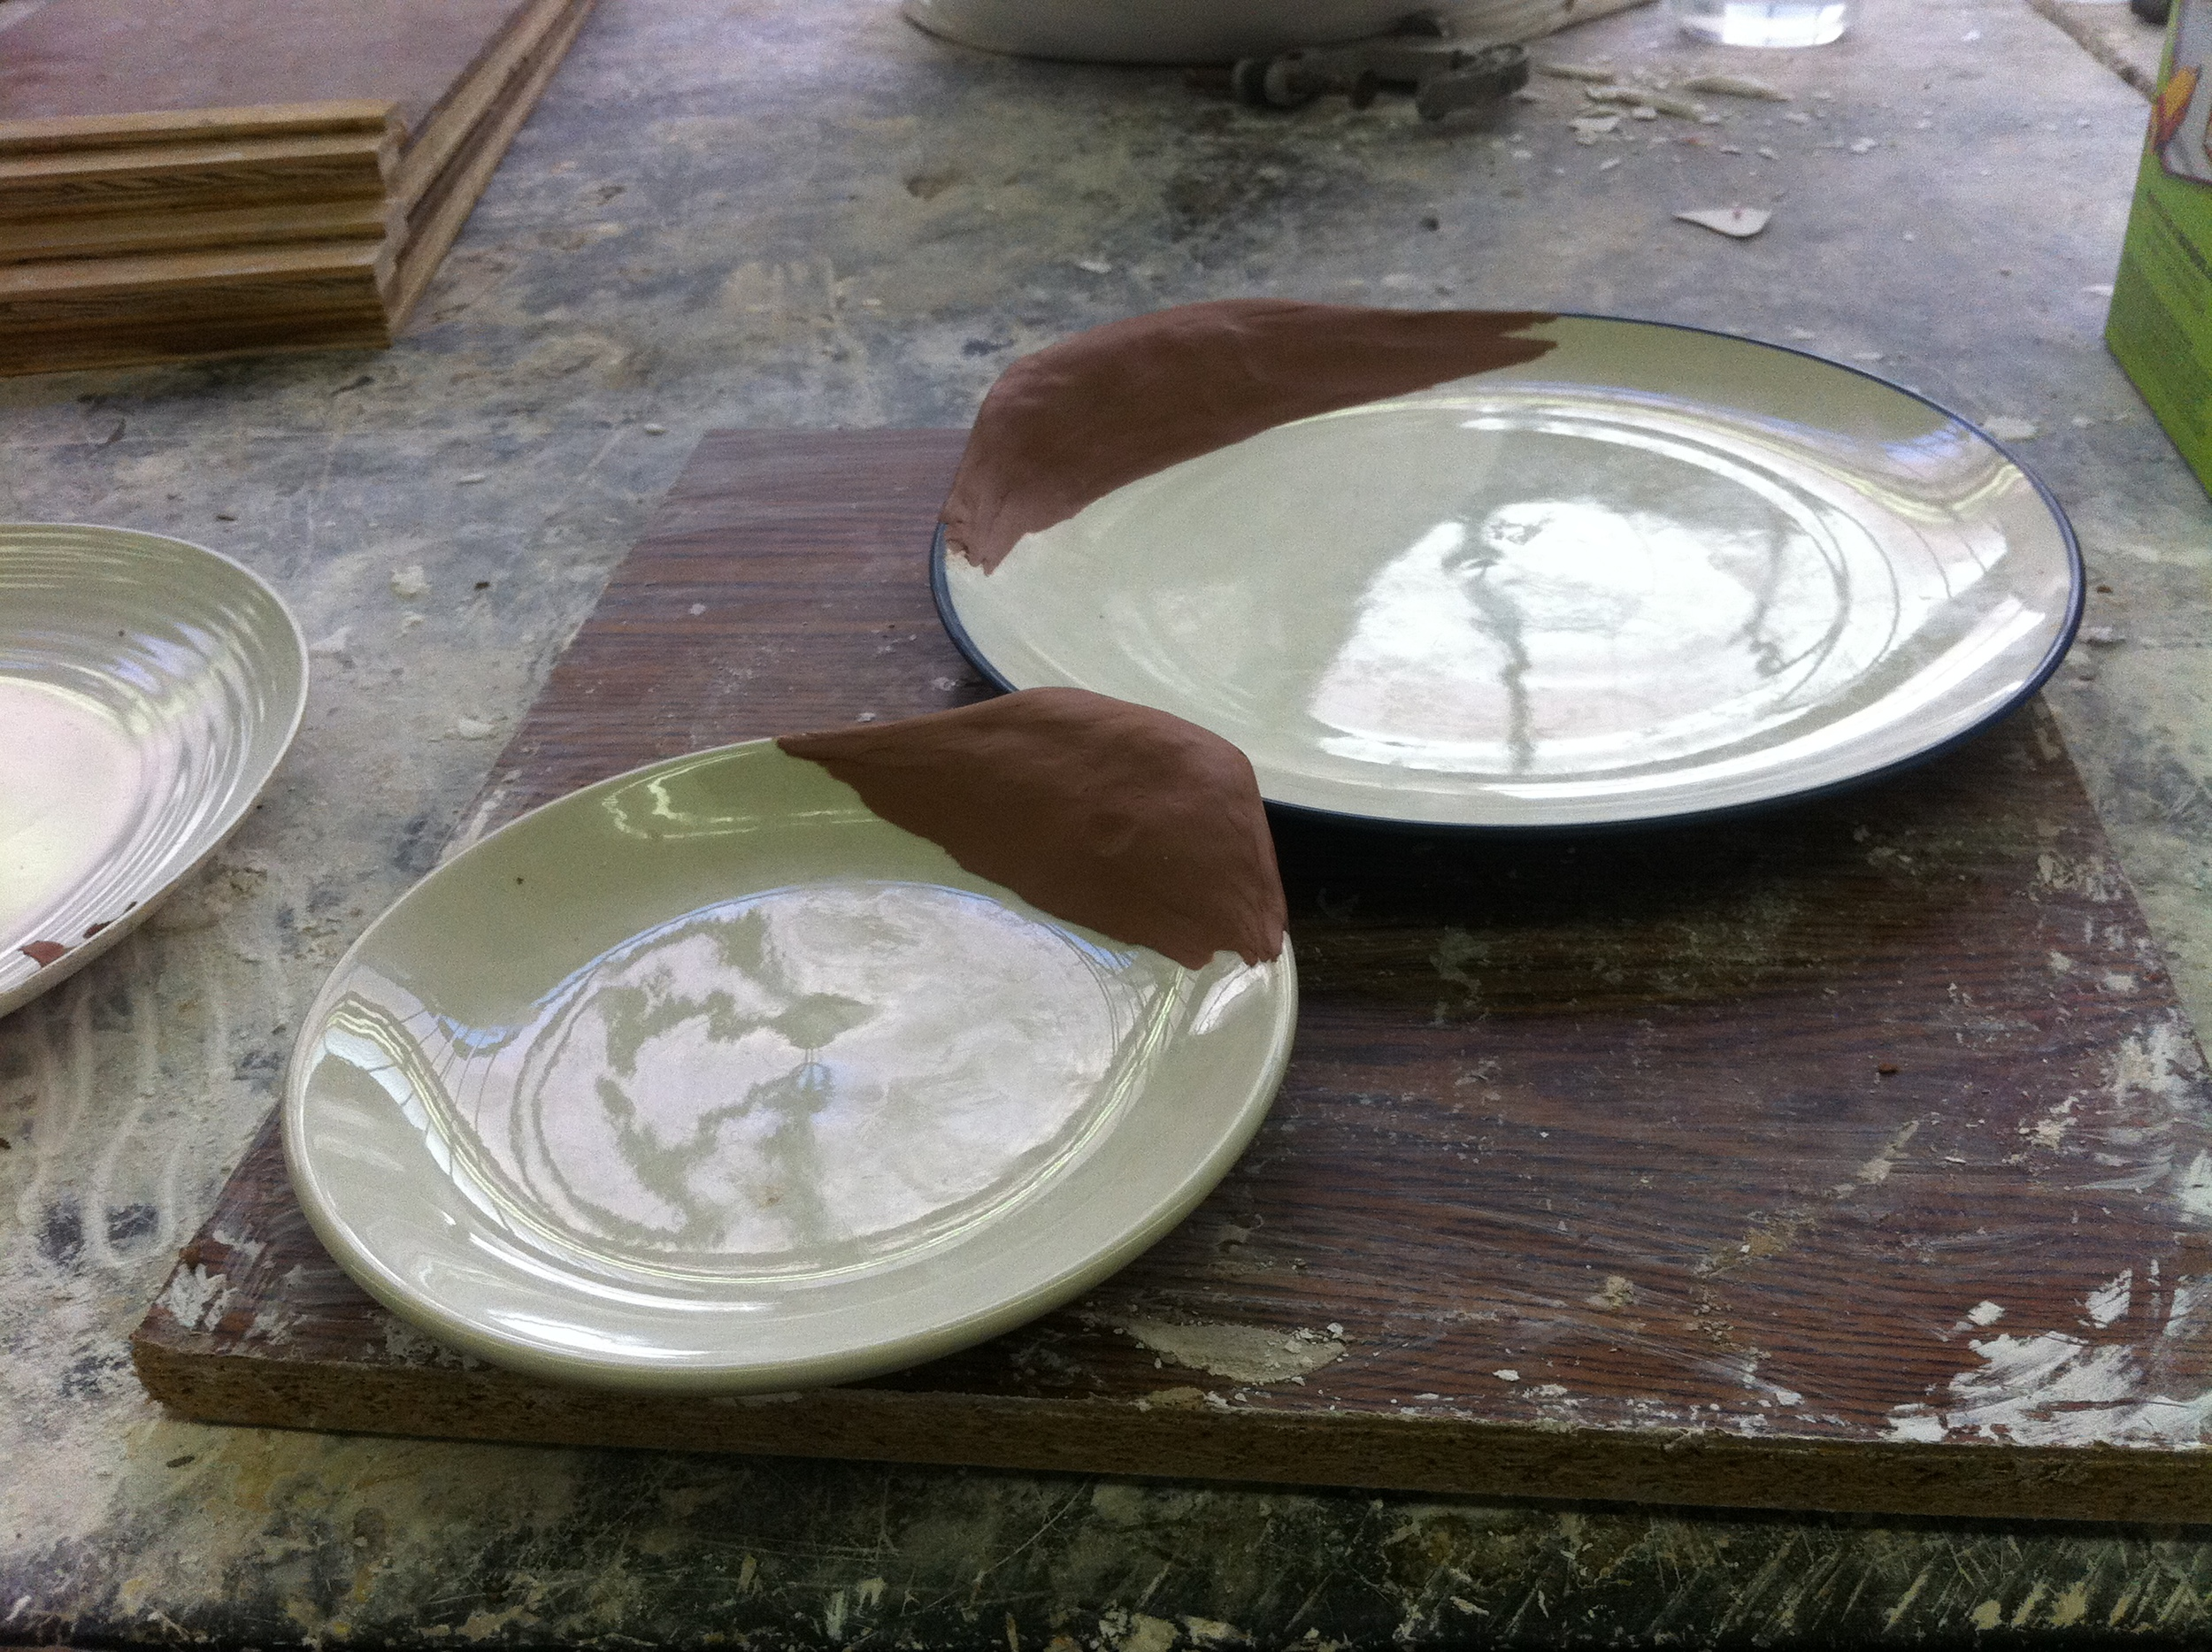 I created the plate form by adding a Plasteline clay extension.